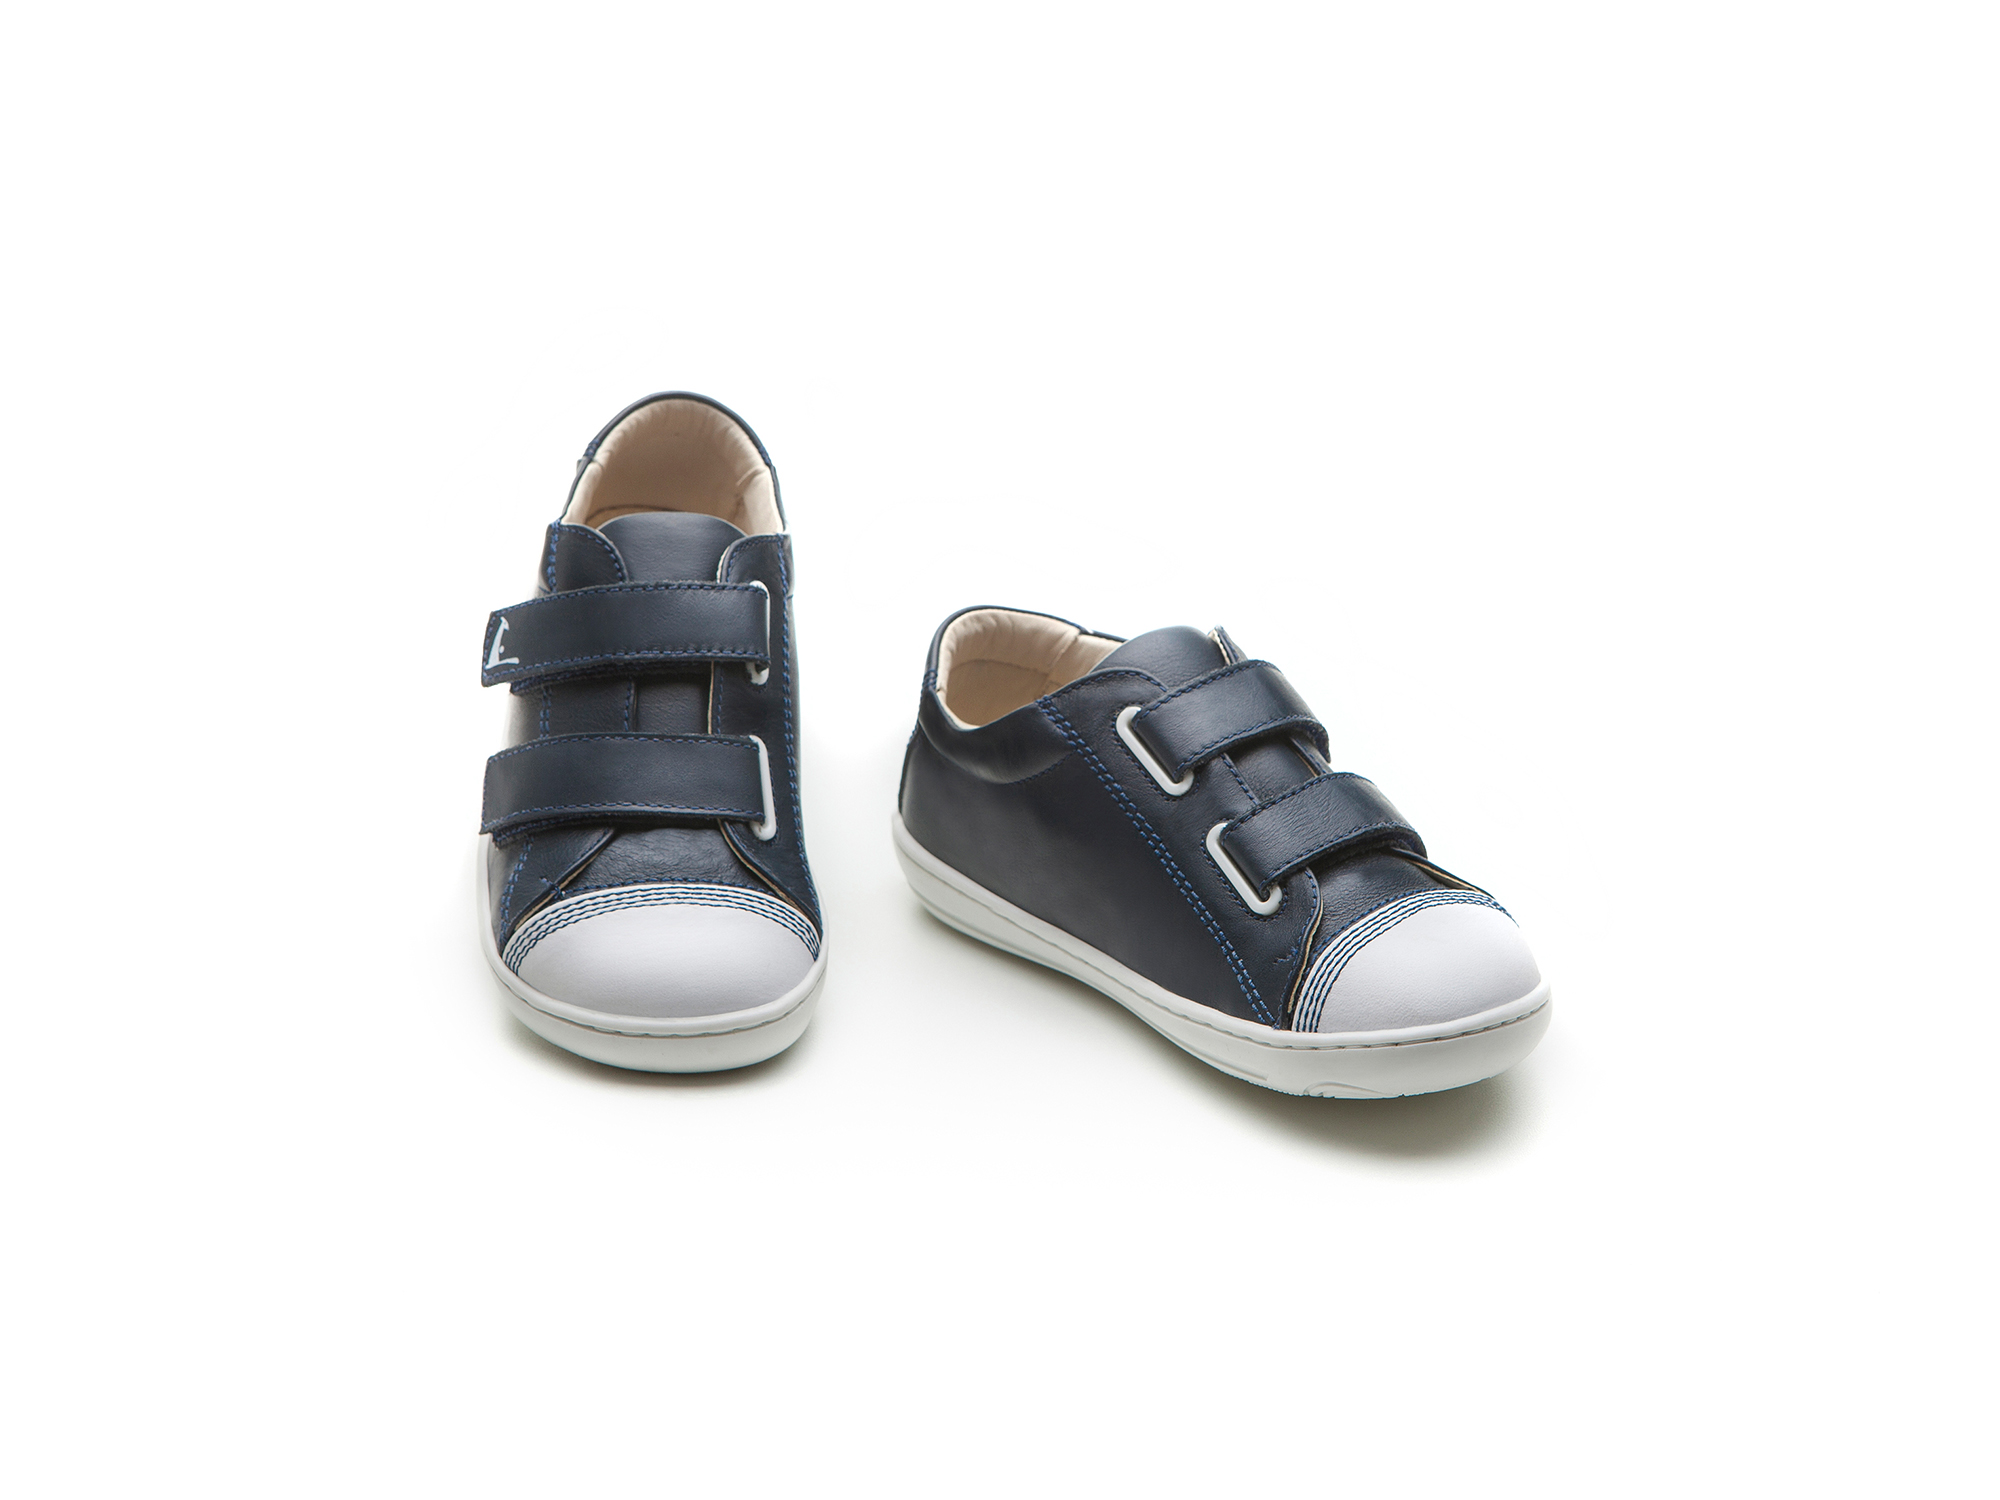 Tênis Munch Navy/ White Junior 4 à 8 anos - 1